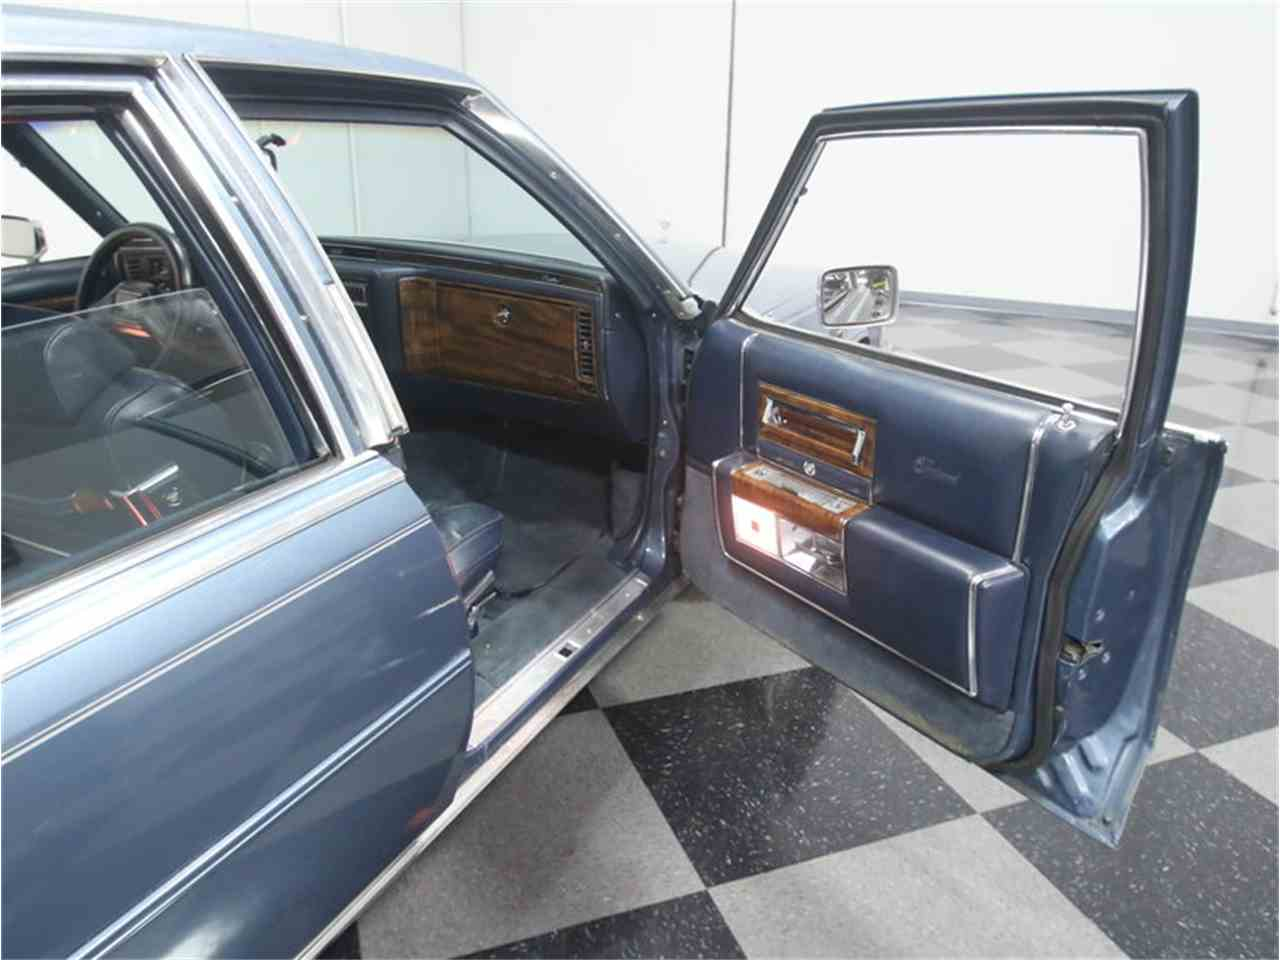 Large Picture of 1986 Cadillac Fleetwood Brougham located in Lithia Springs Georgia - $8,995.00 - LHHW